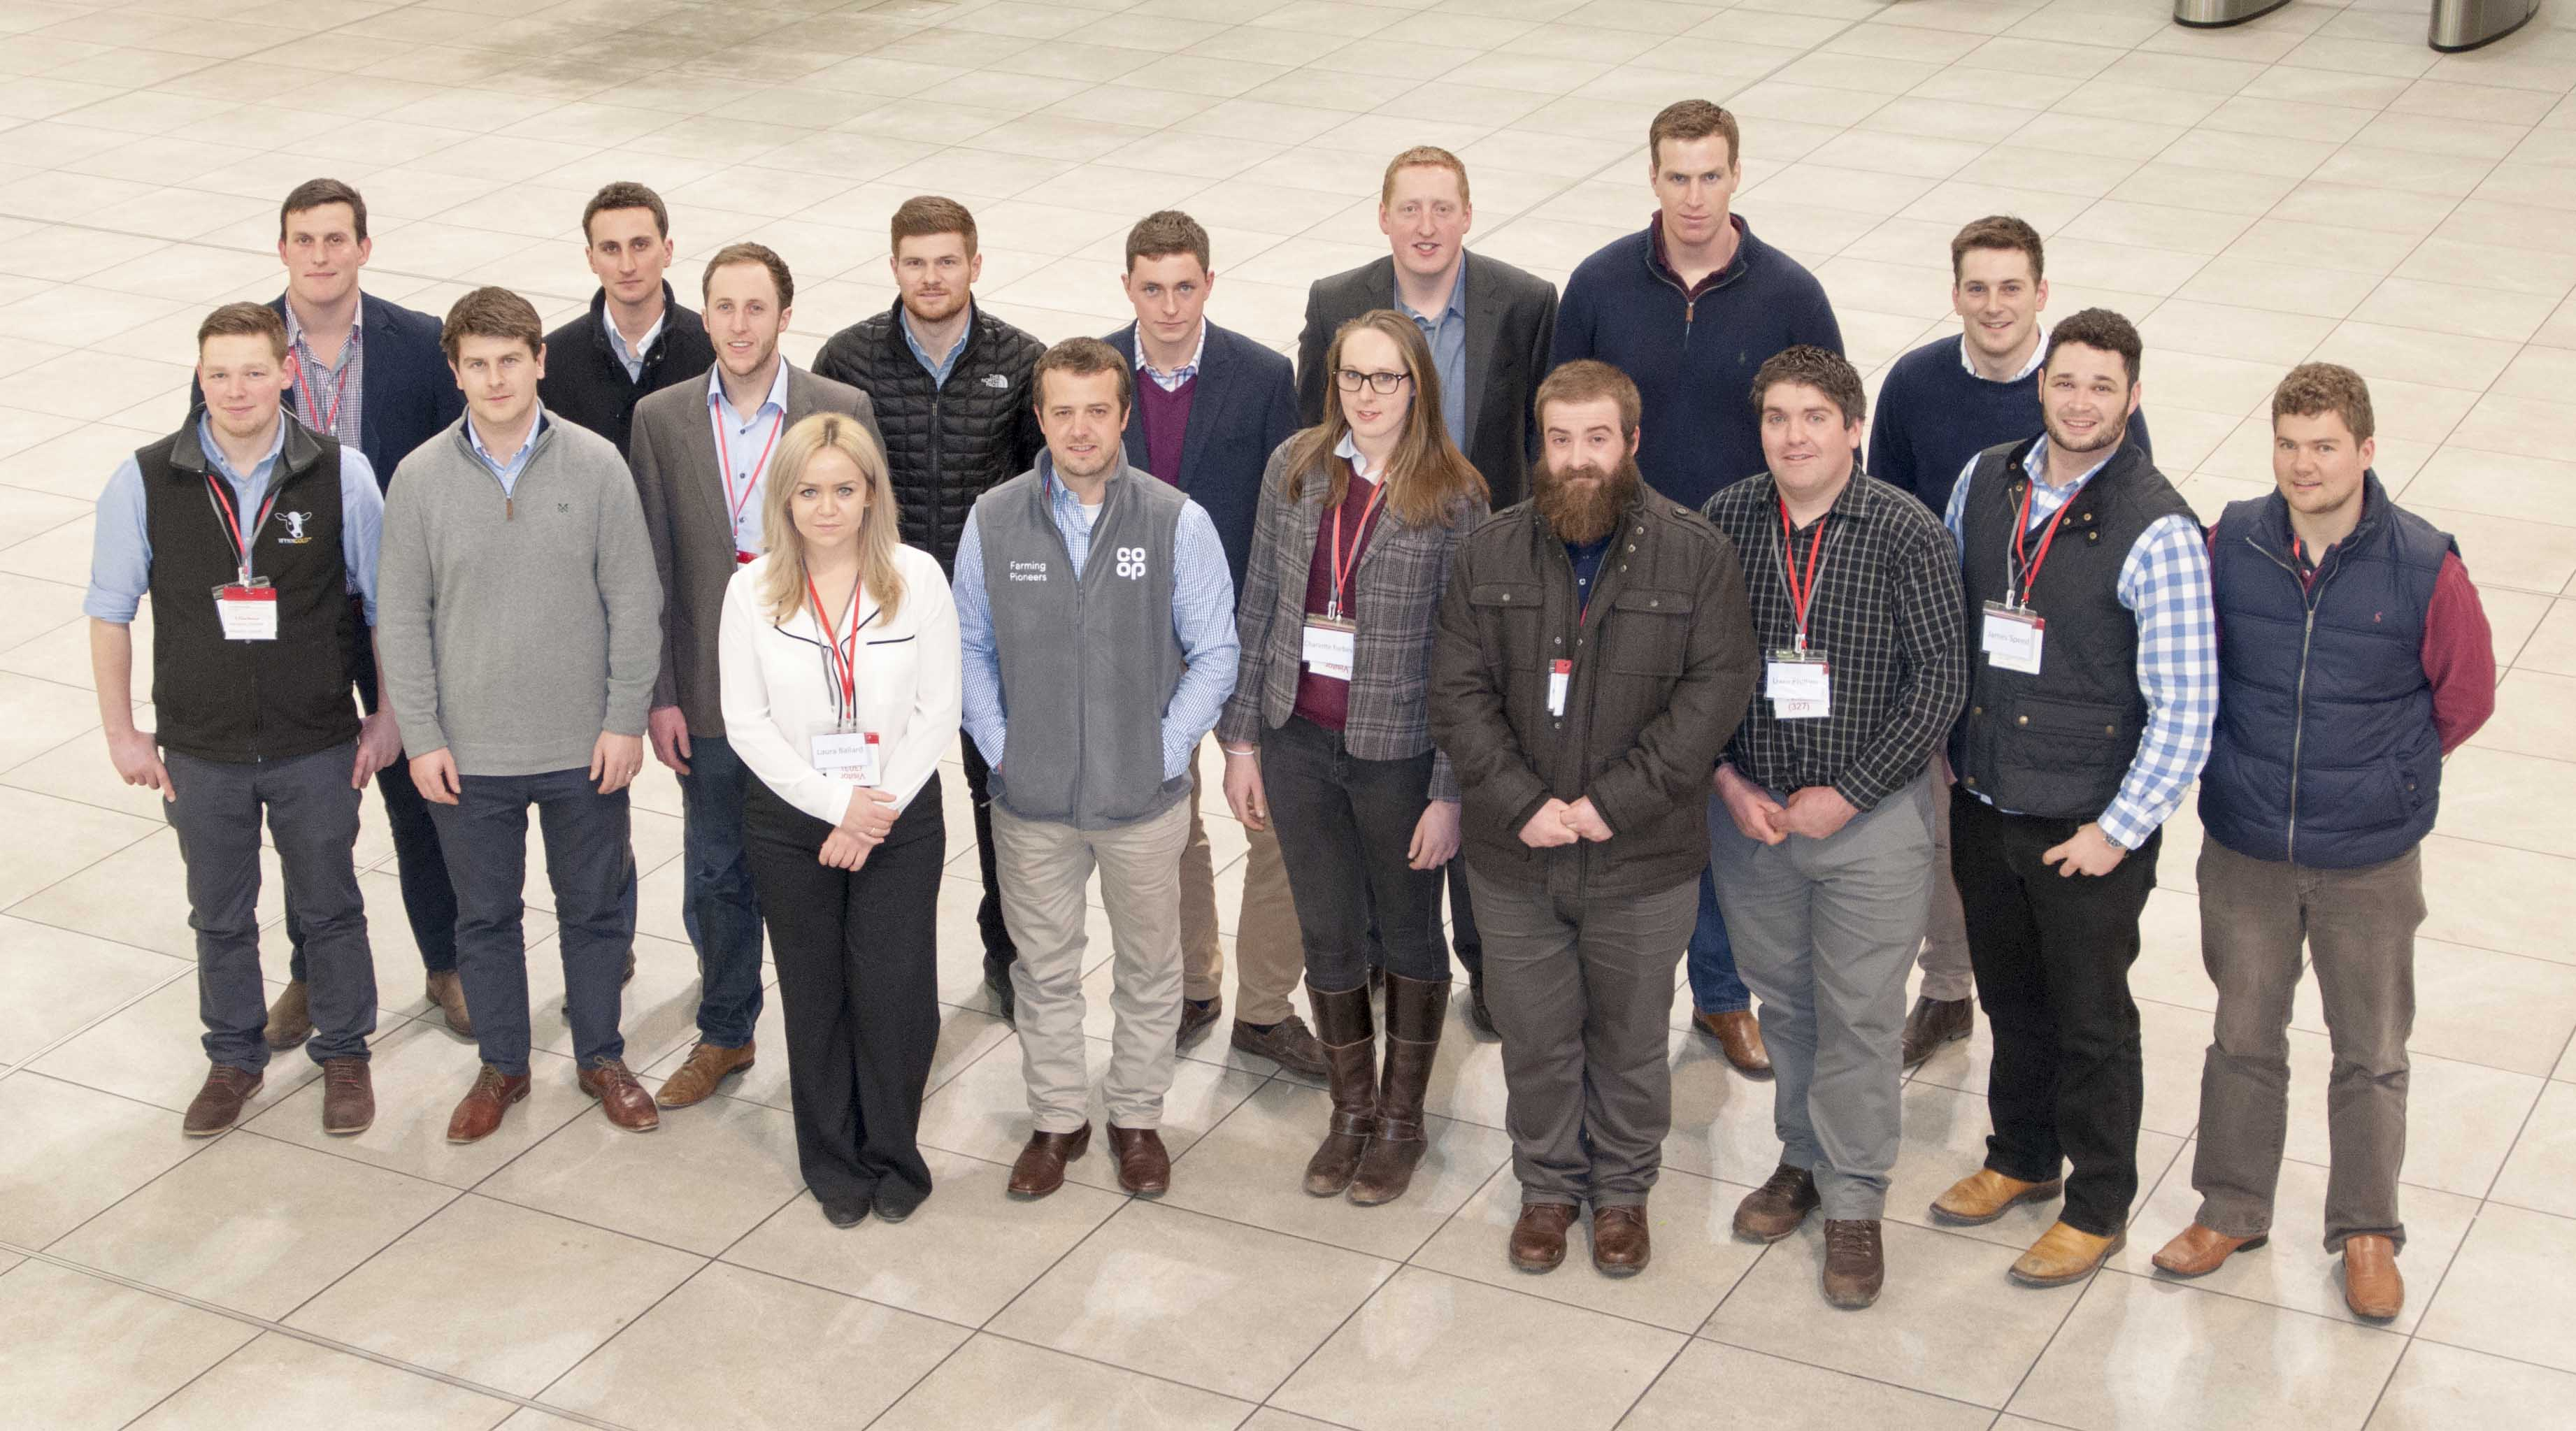 Fostering young farming talent: Co-op welcomes class of 2017